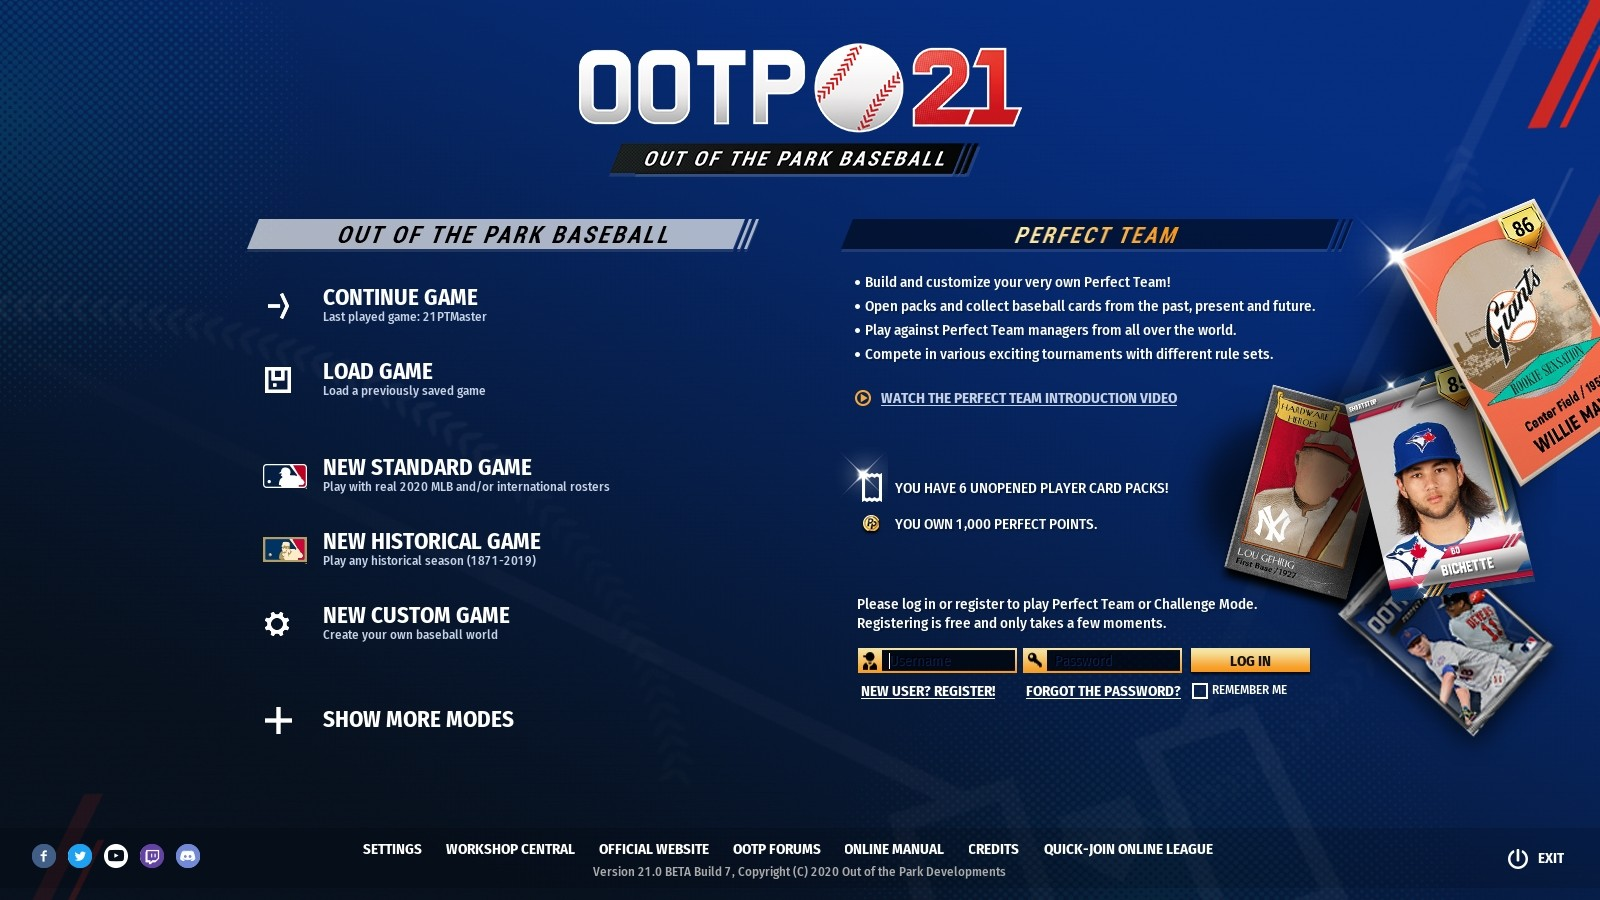 Find the best laptop for OotPB21